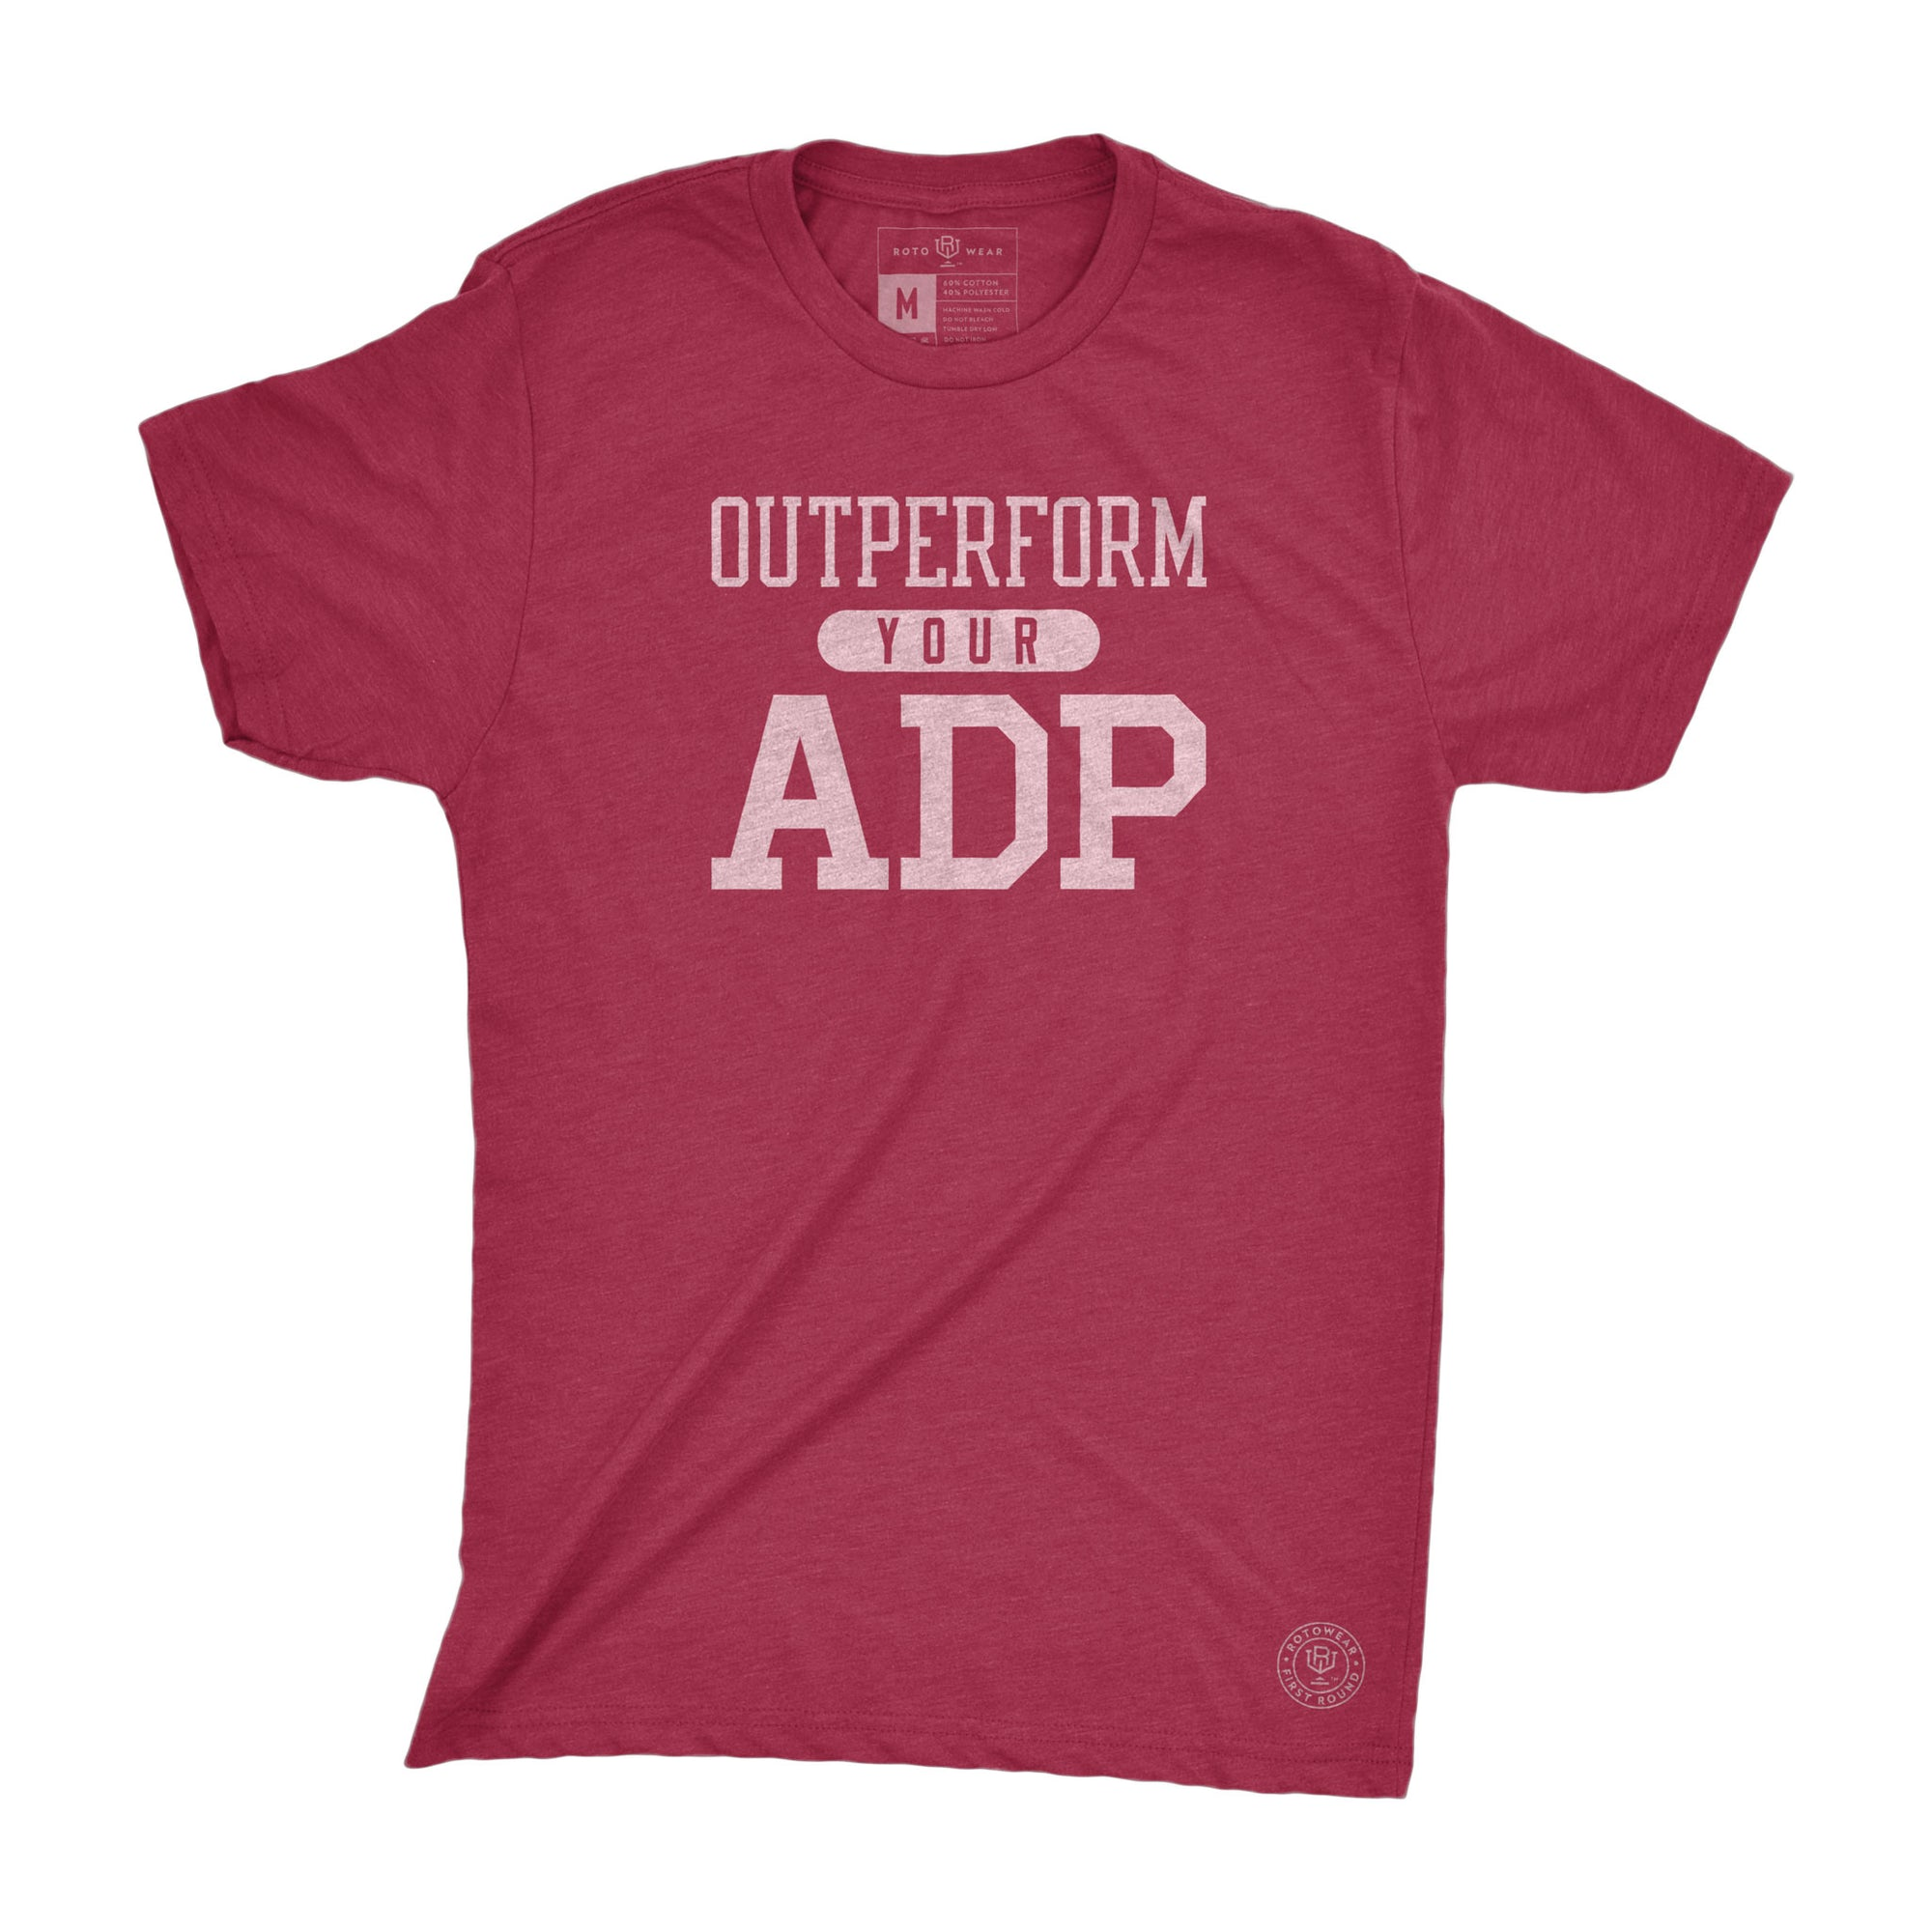 Outperform Your ADP T-Shirt